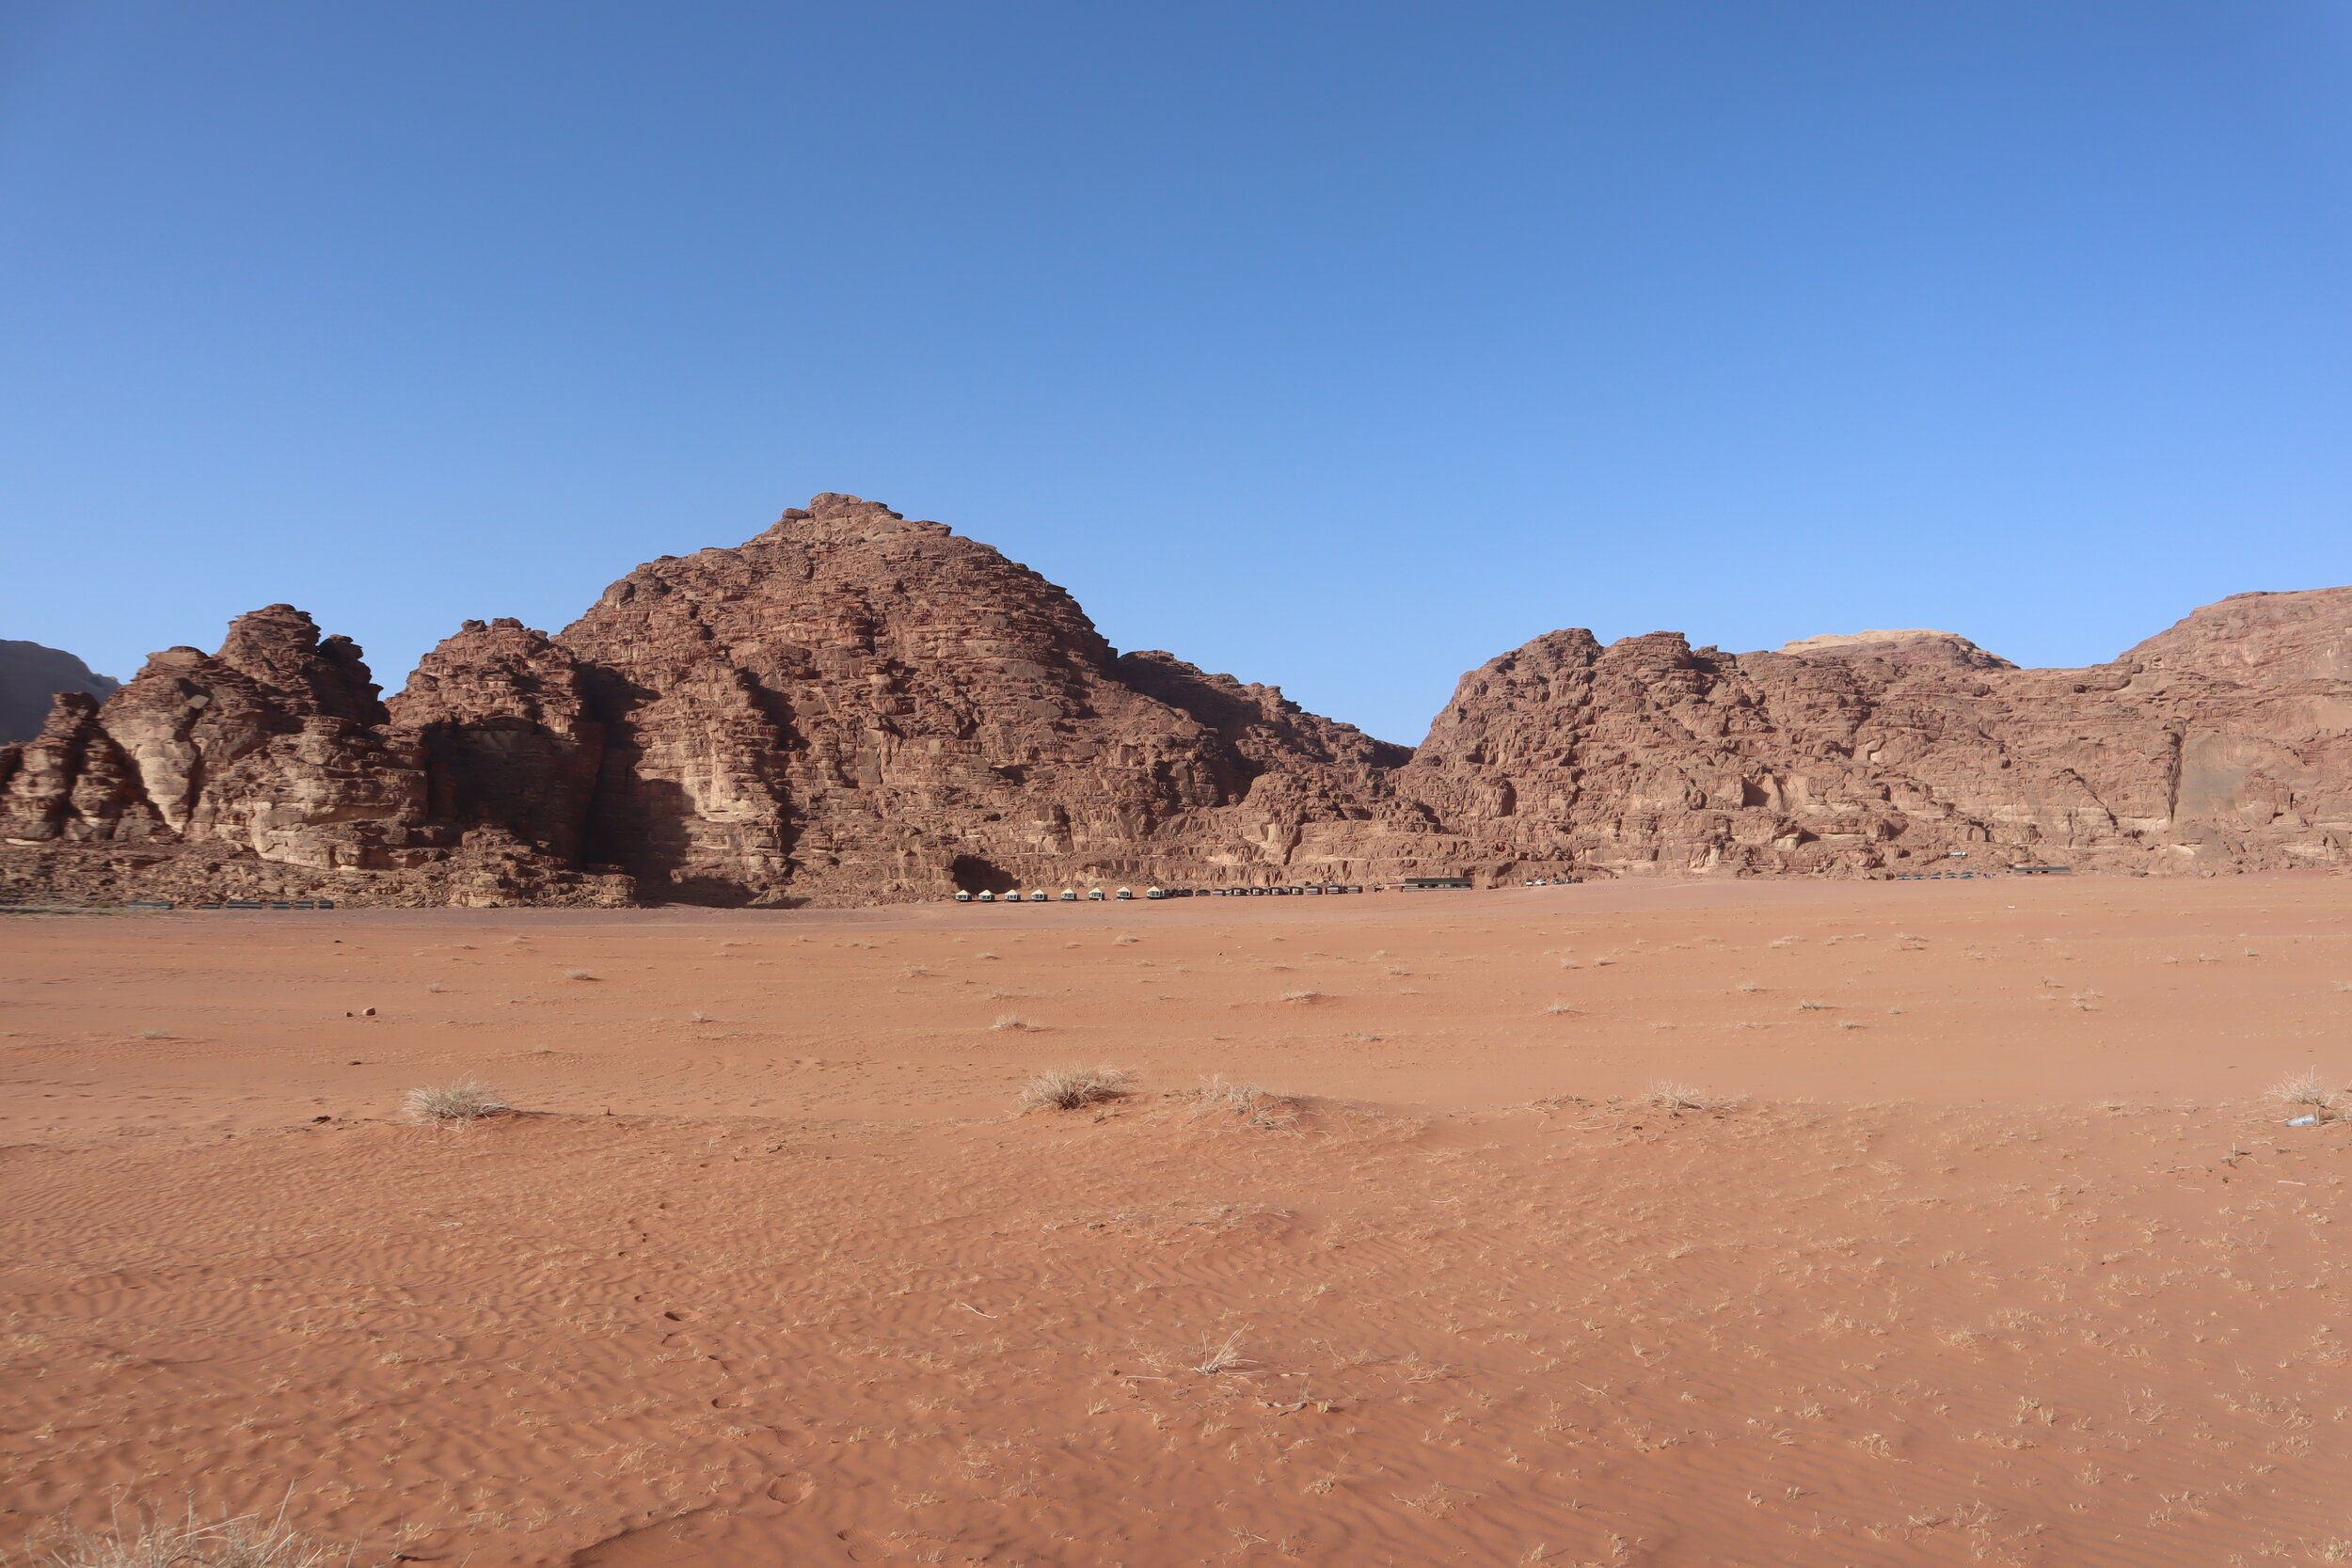 Wadi Rum Bedouin Camp from afar